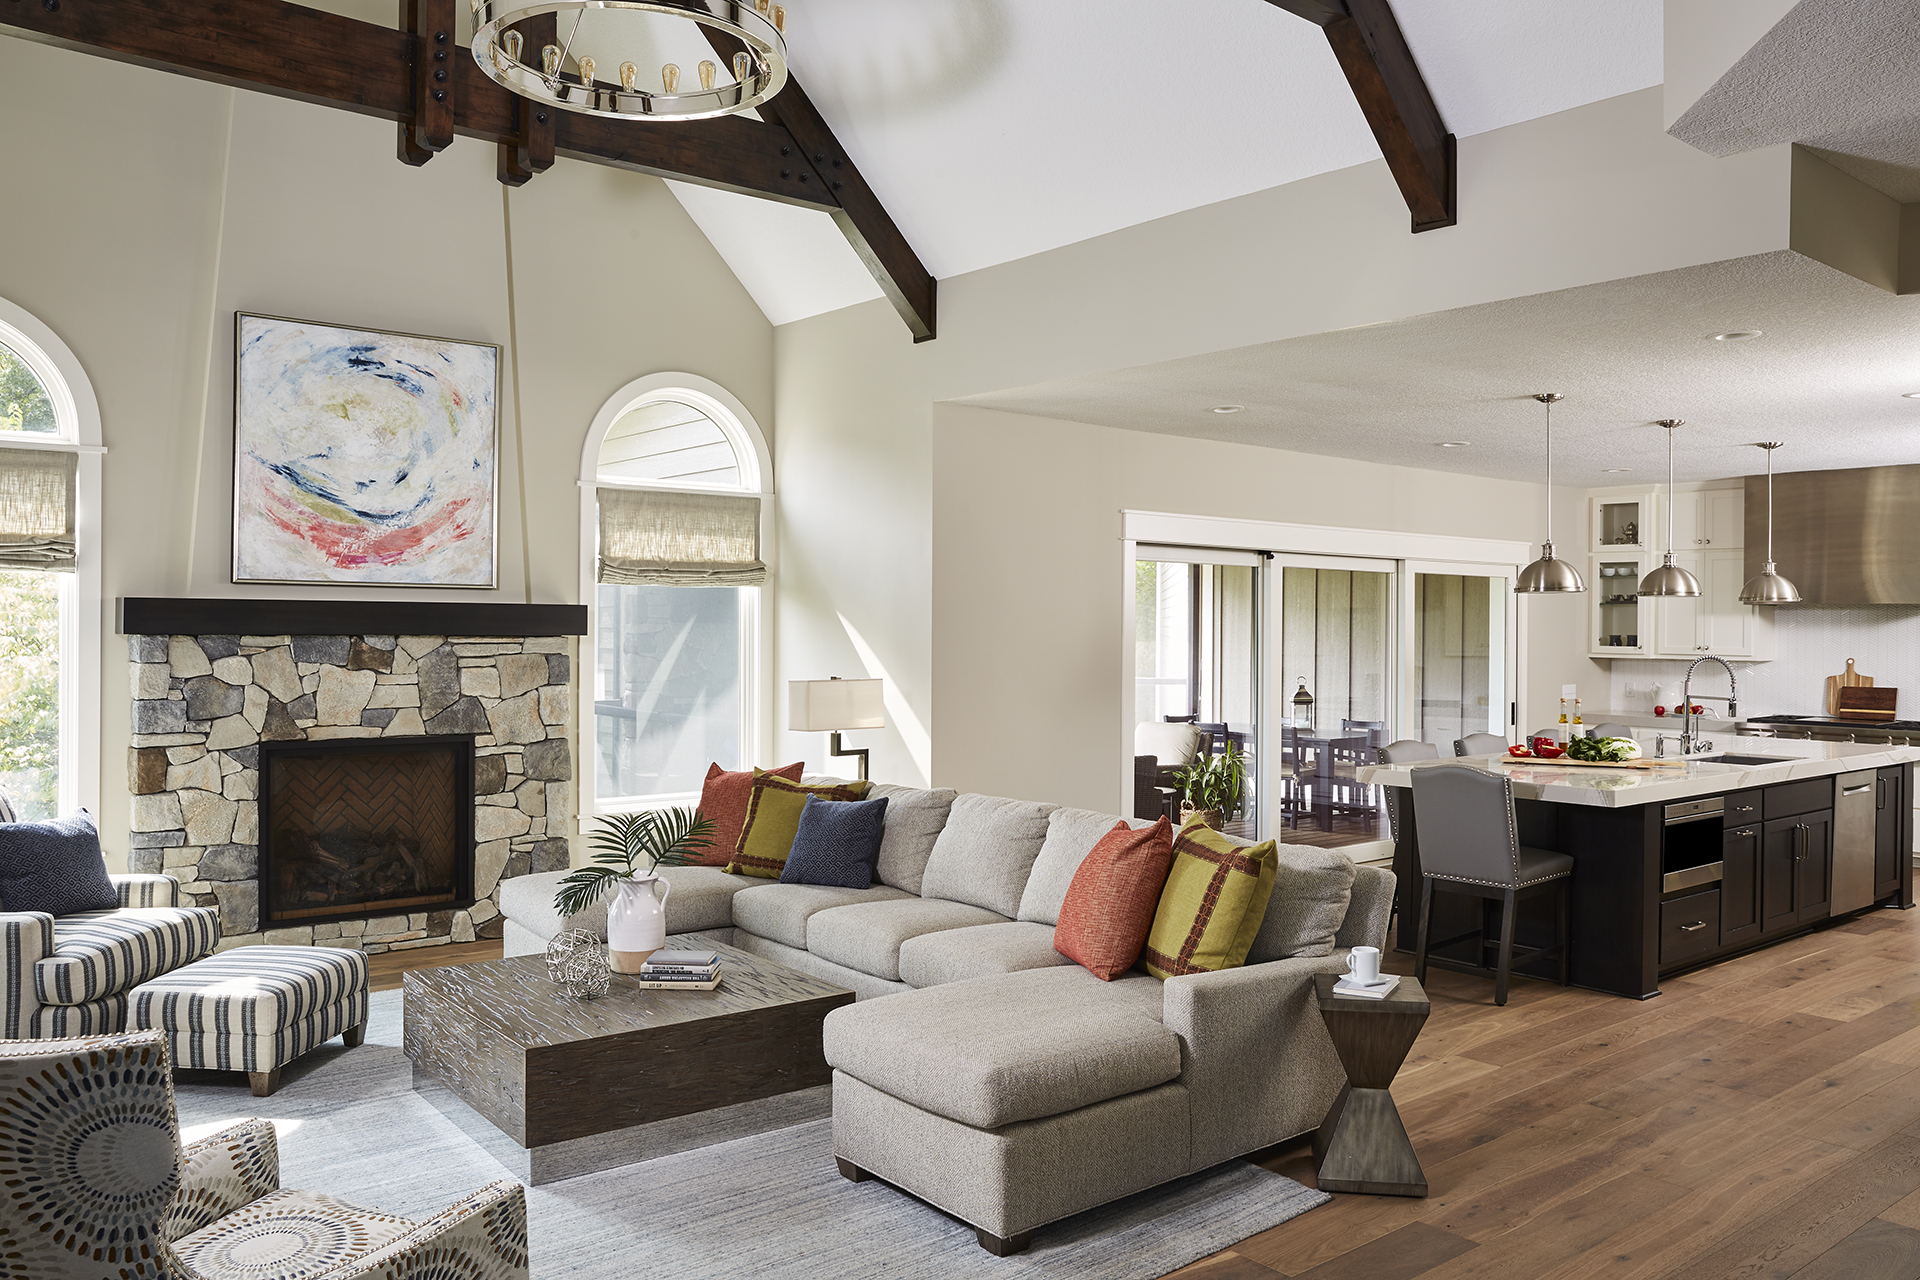 By removing the wall separating the adjoining kitchen and foyer, this living room instantly felt more open and inviting, providing the perfect space for conversation and entertaining.